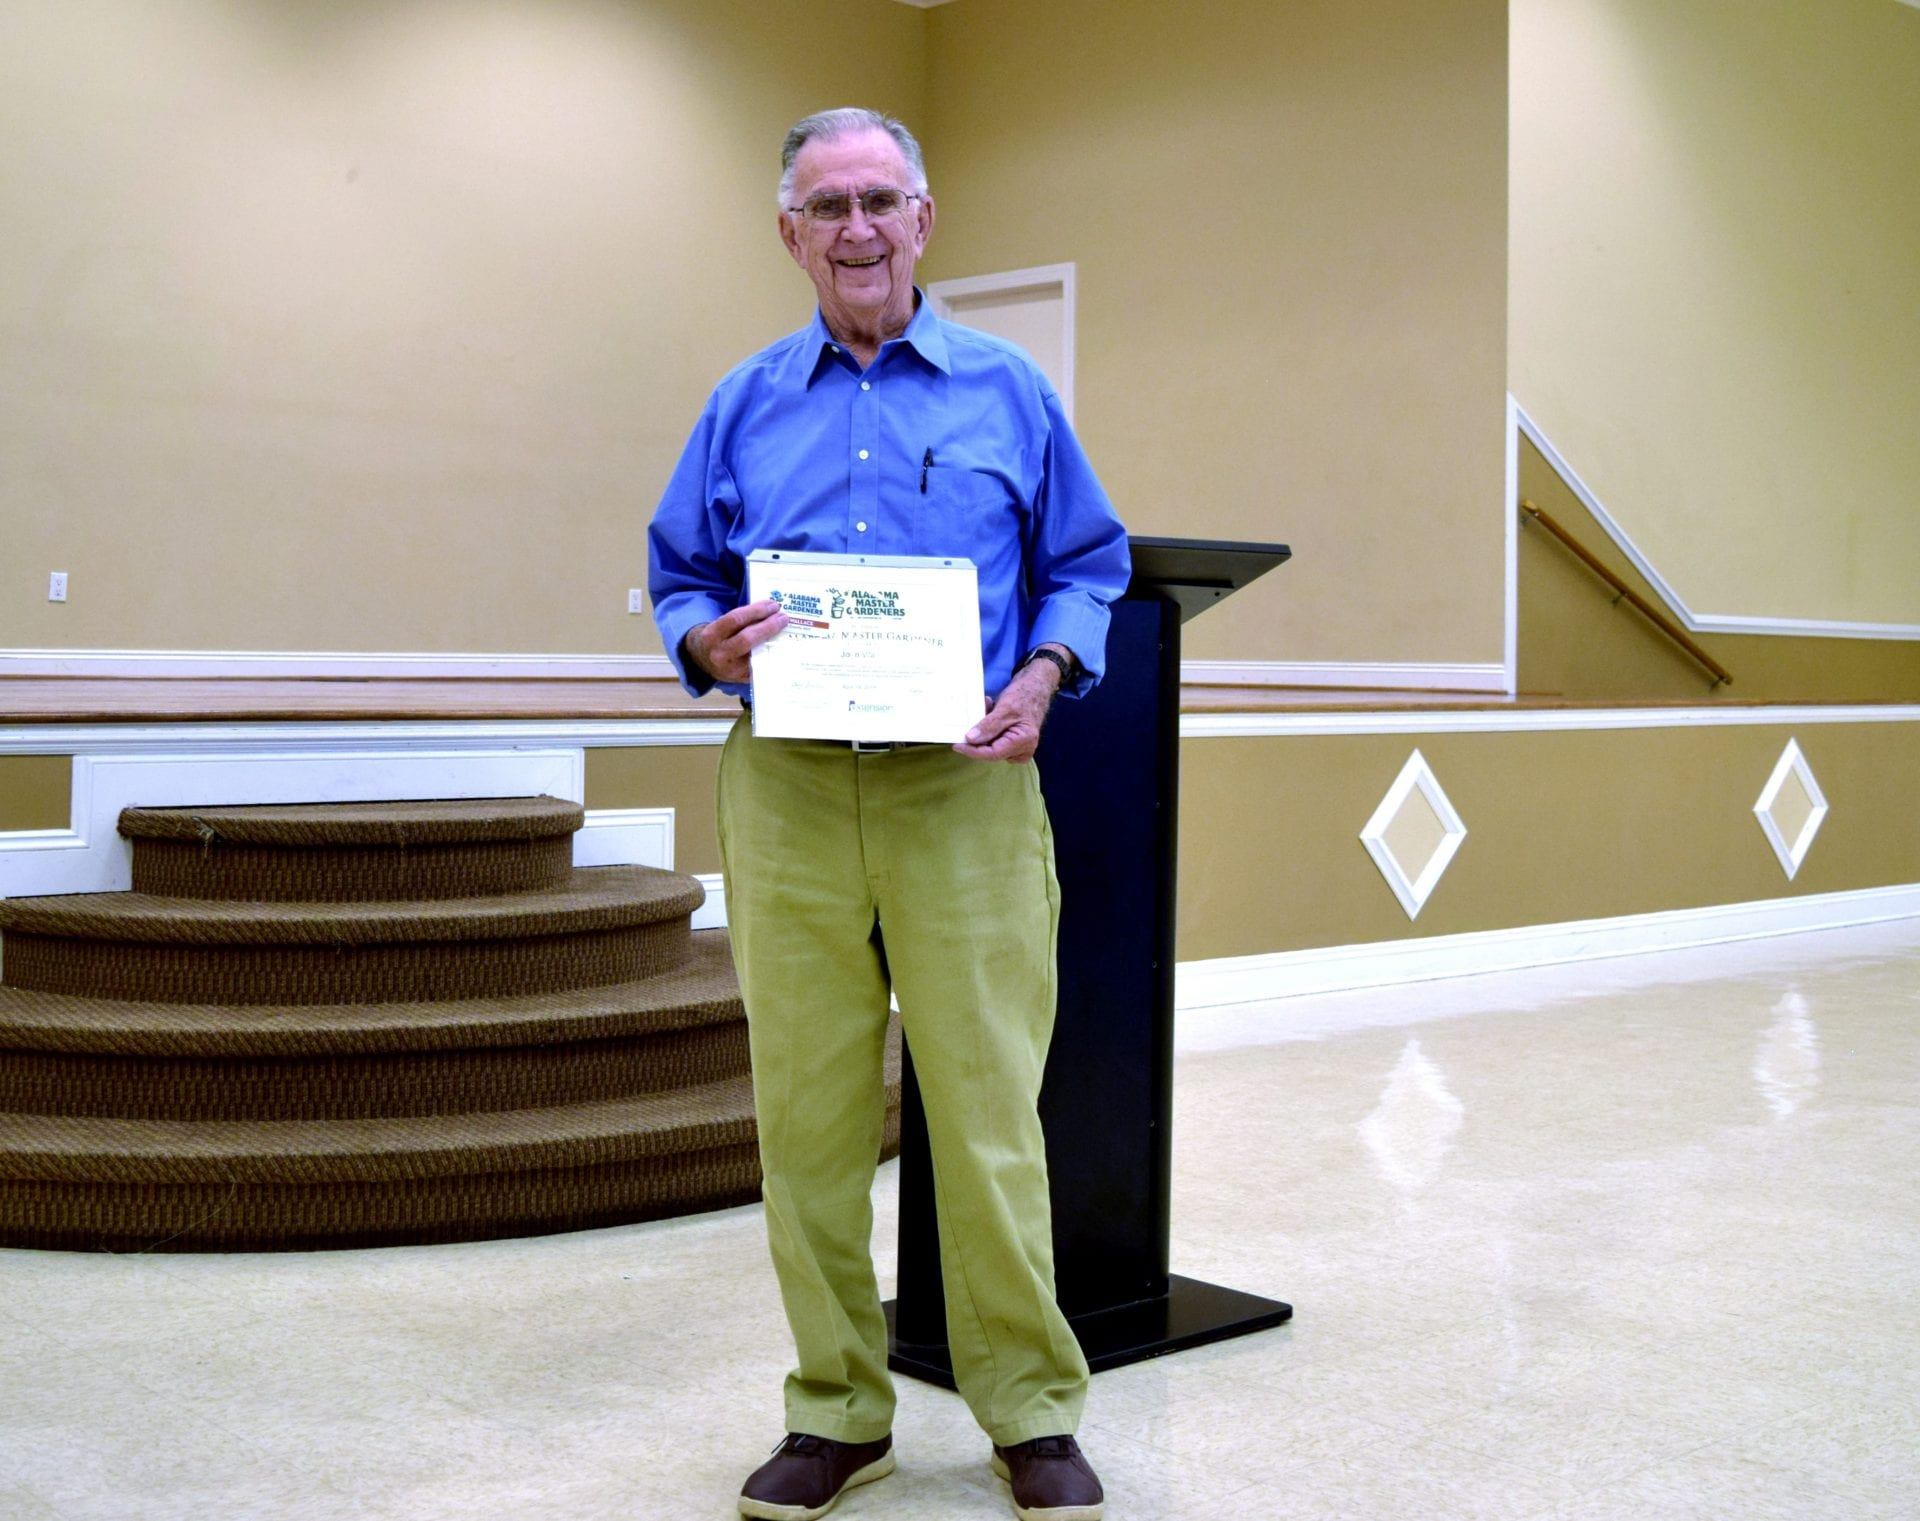 John Wallace getting certificate